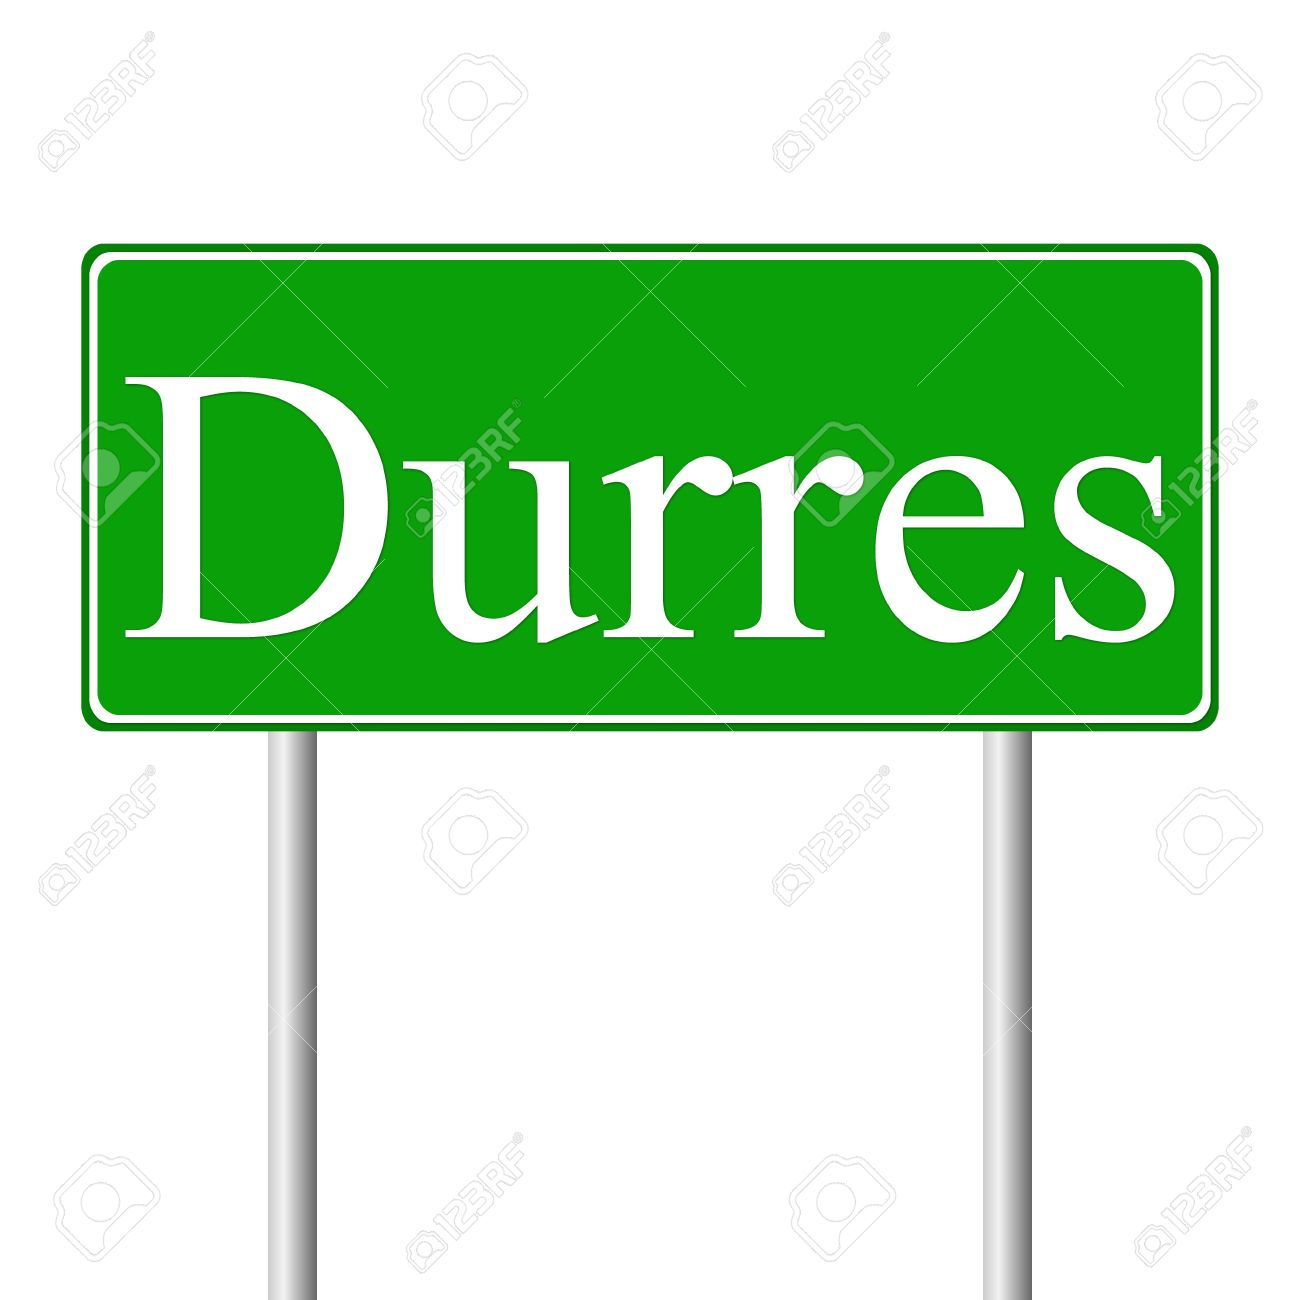 Durres Green Road Sign Isolated On White Background Royalty Free.